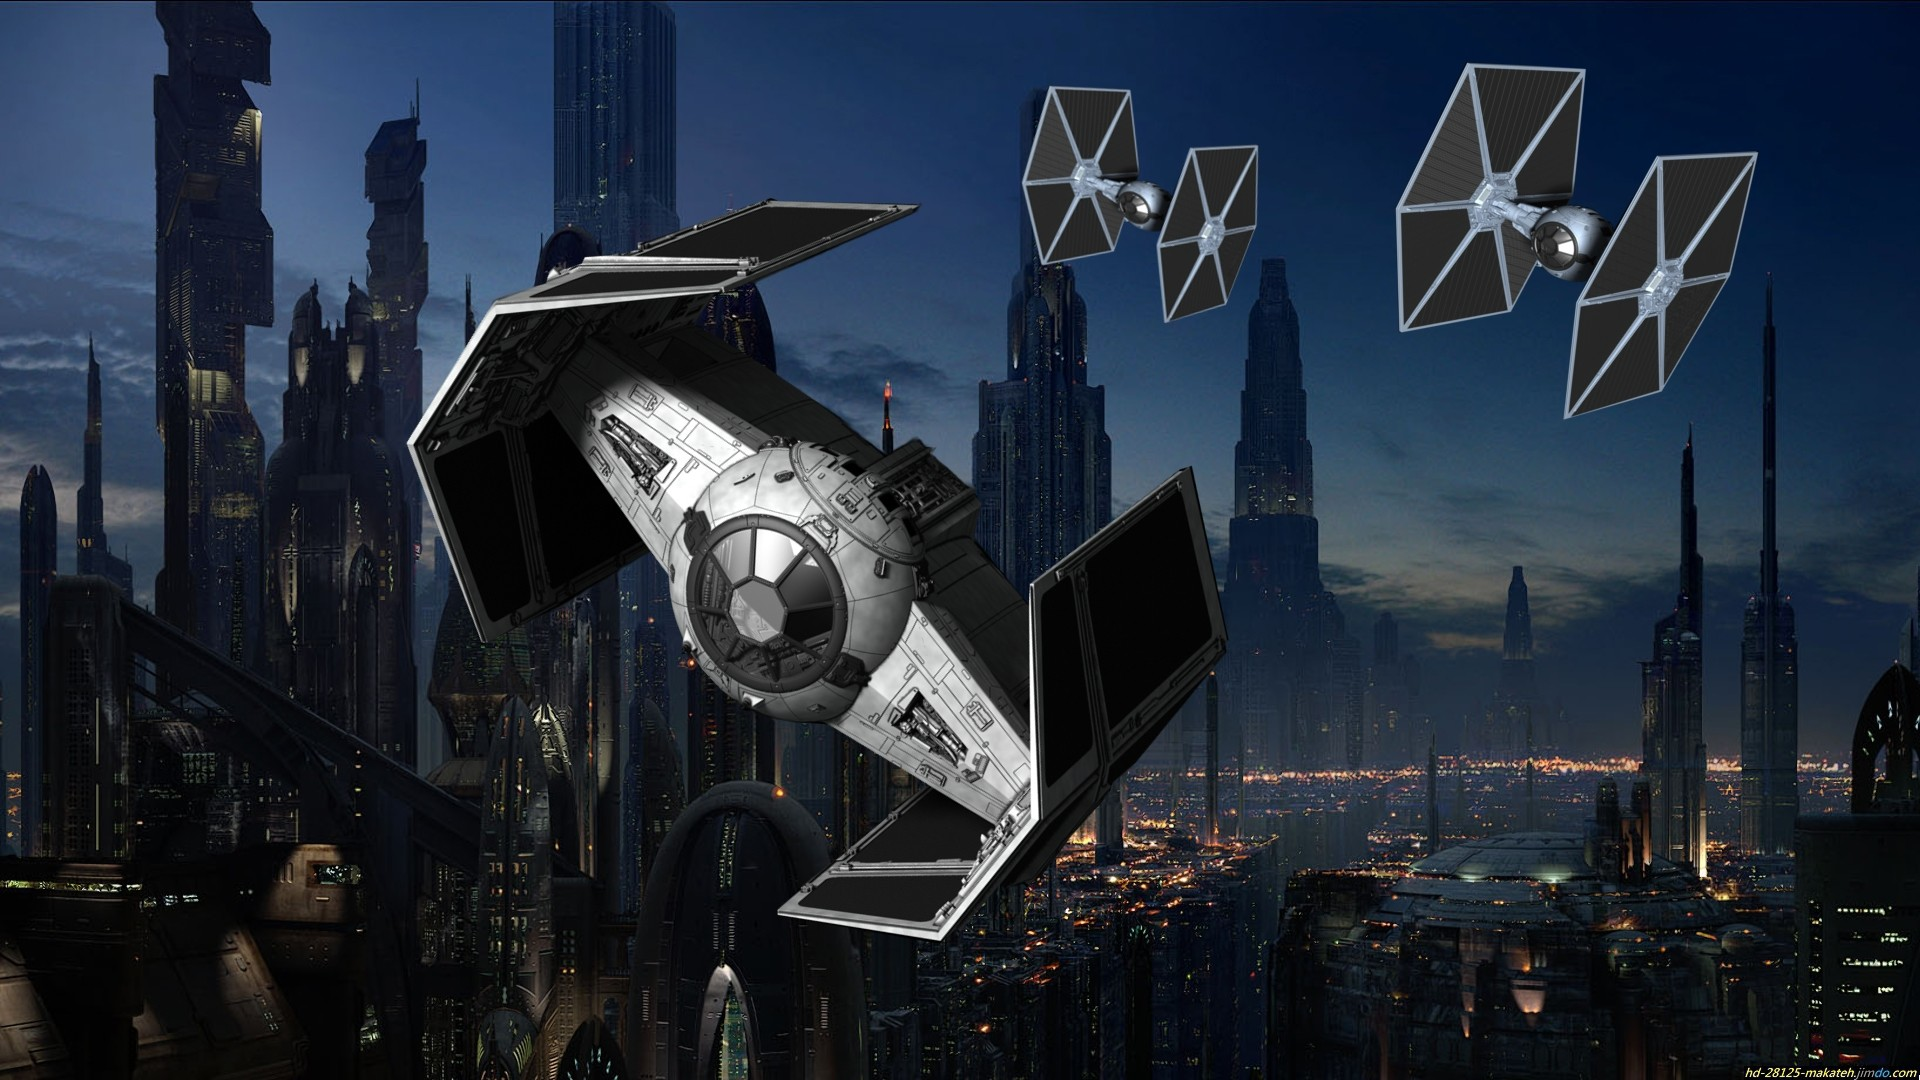 Star Wars Tie Fighter Wallpaper Posted By Sarah Mercado